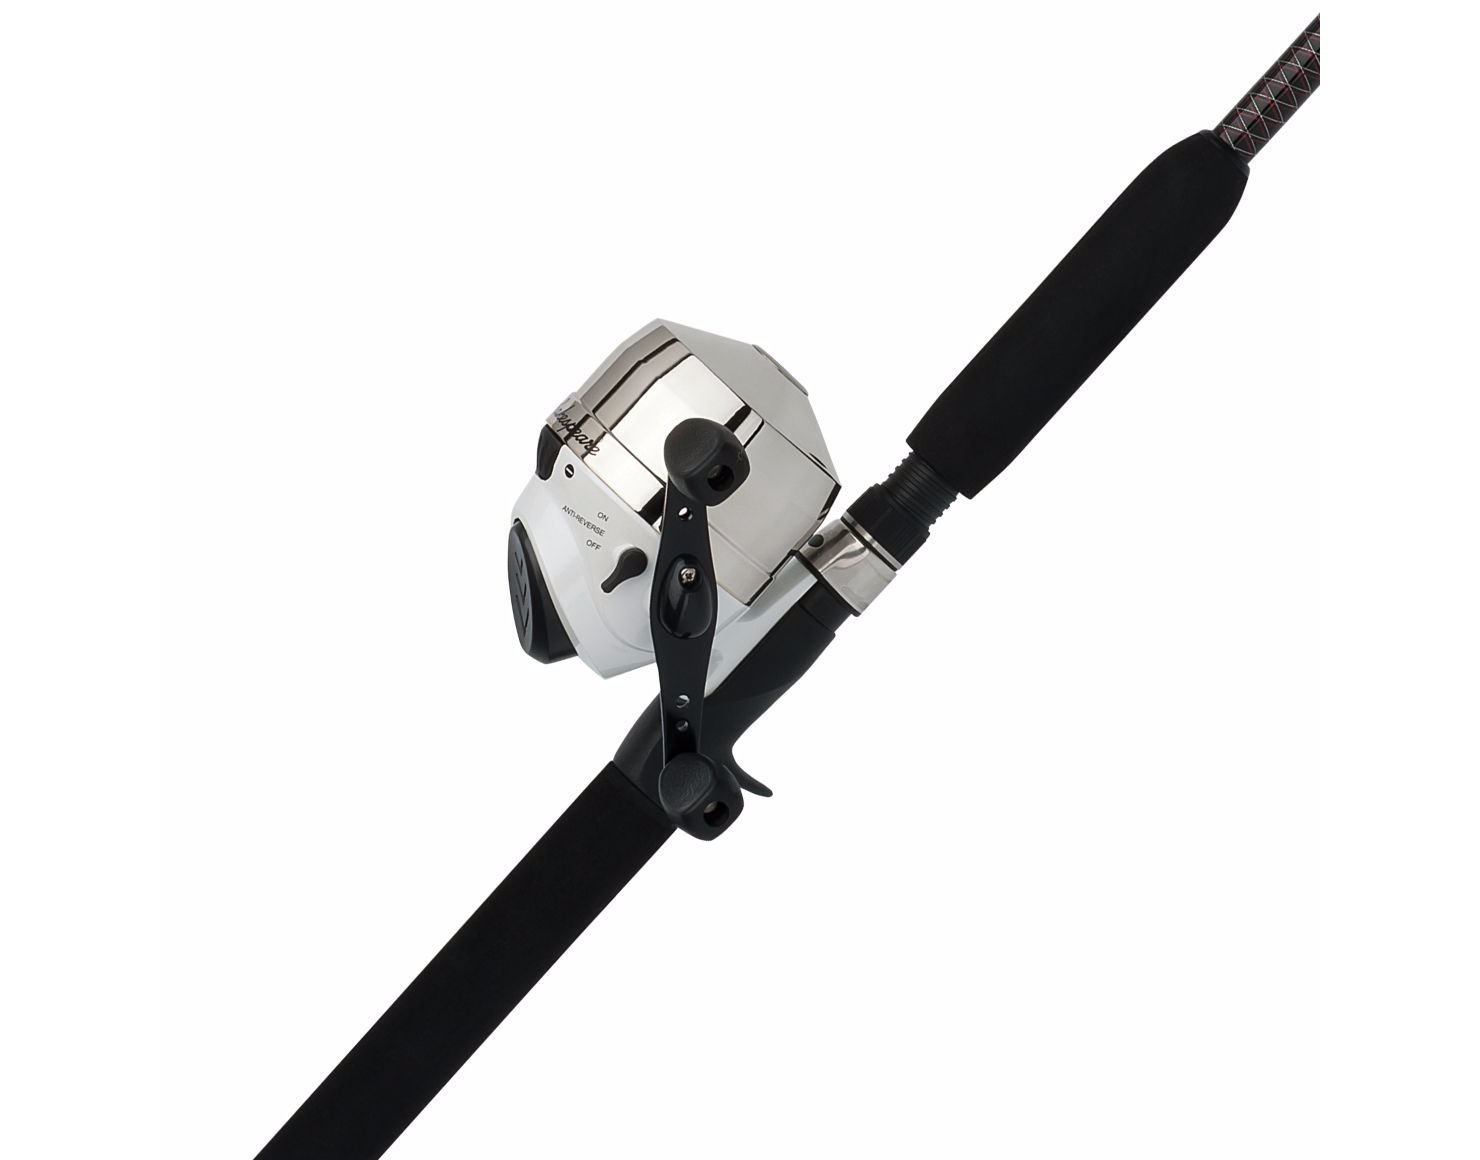 Spincast, Spinning, Conventional Ugly Stik Catfish Fishing Combo